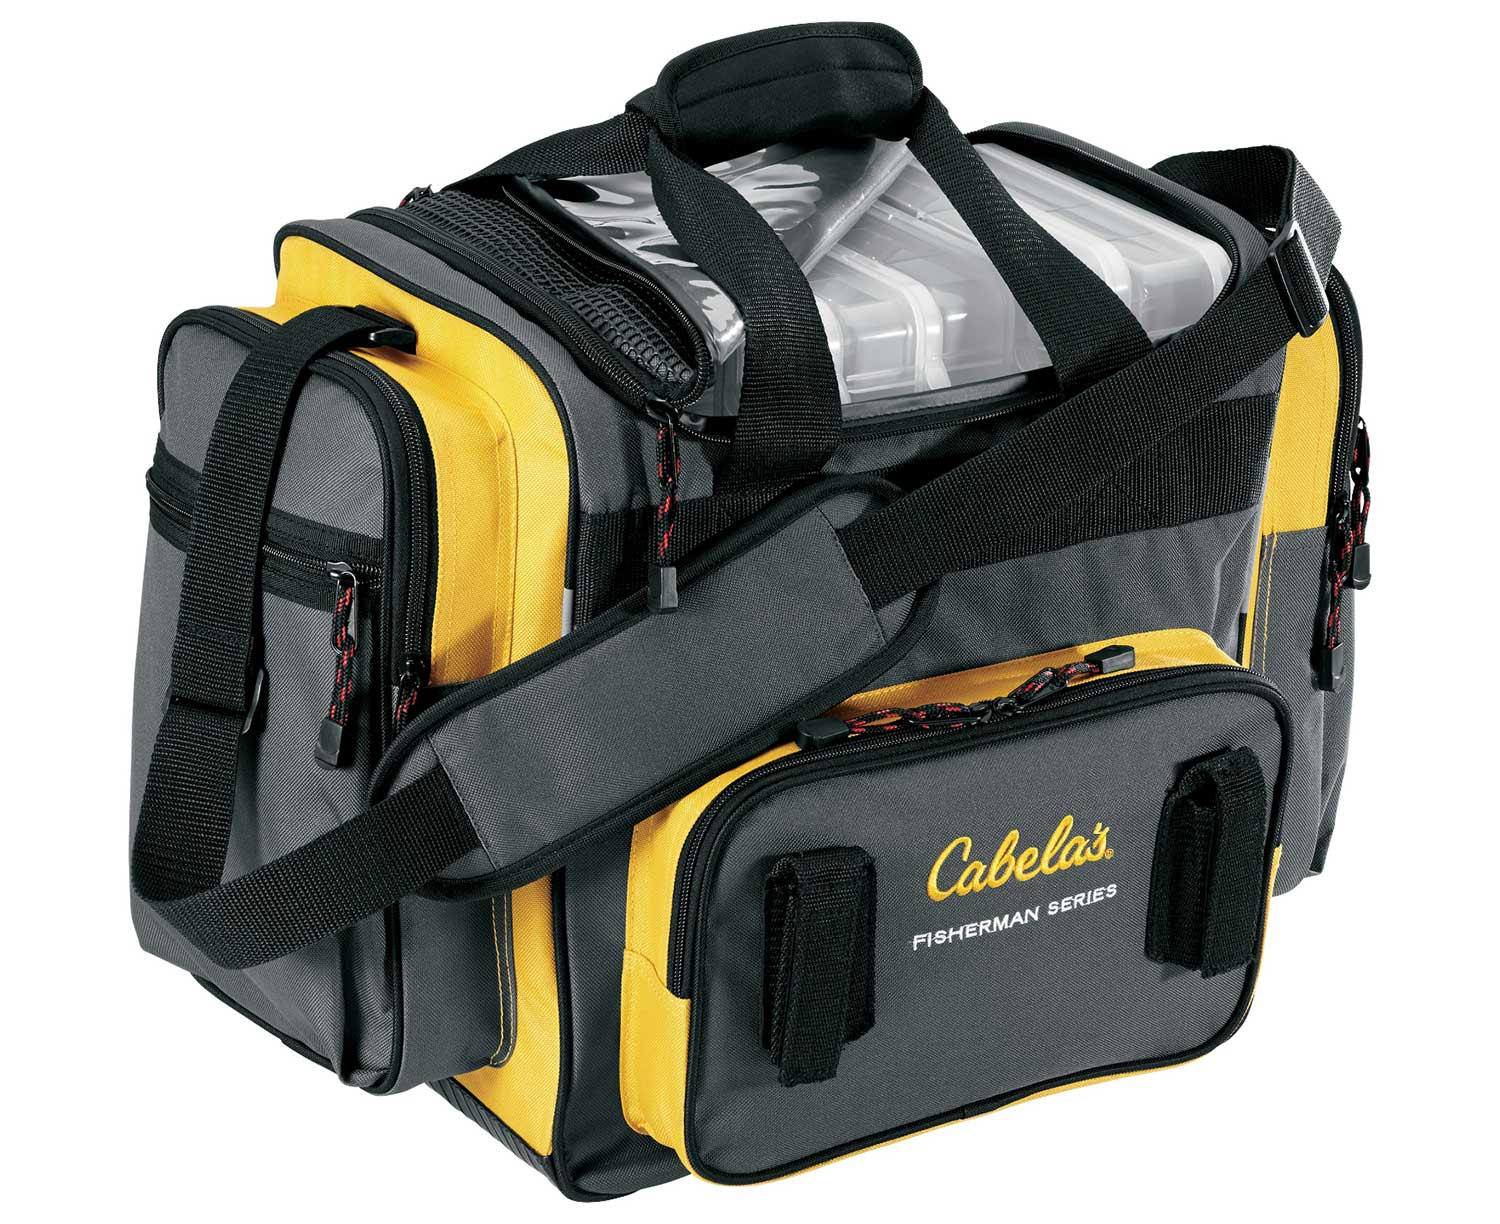 Cabela's Deluxe Fisherman Series Tackle Bags